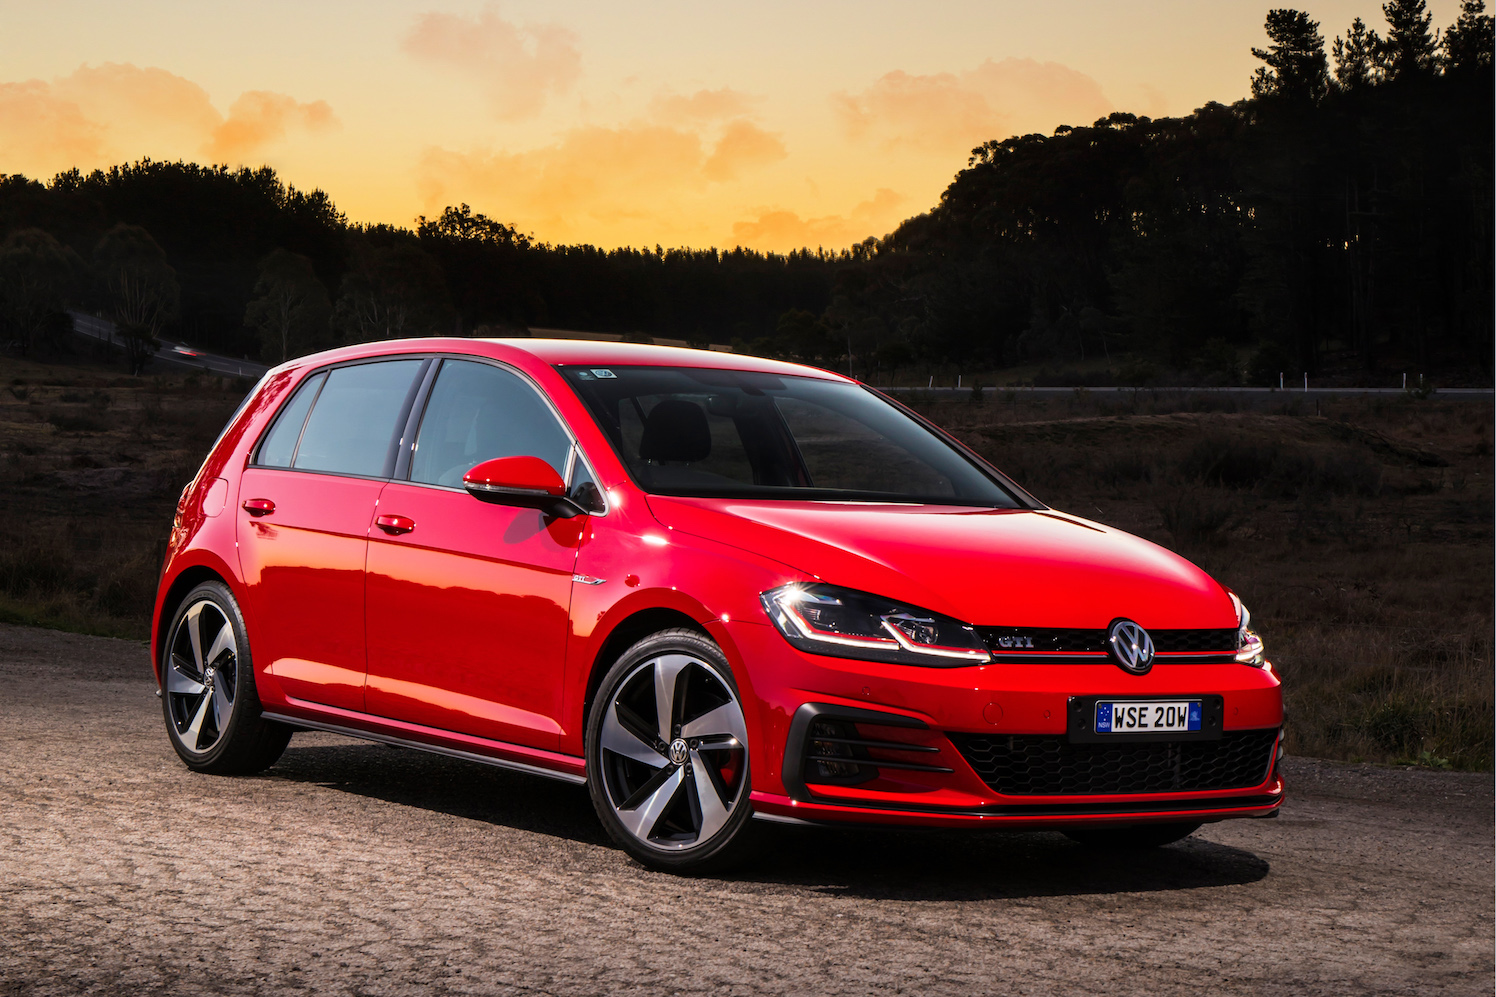 2017 Volkswagen Golf GTI, GTI Performance & Golf R Mark 7.5 First Drive Review | The Hot Hatch Is Alive And Well